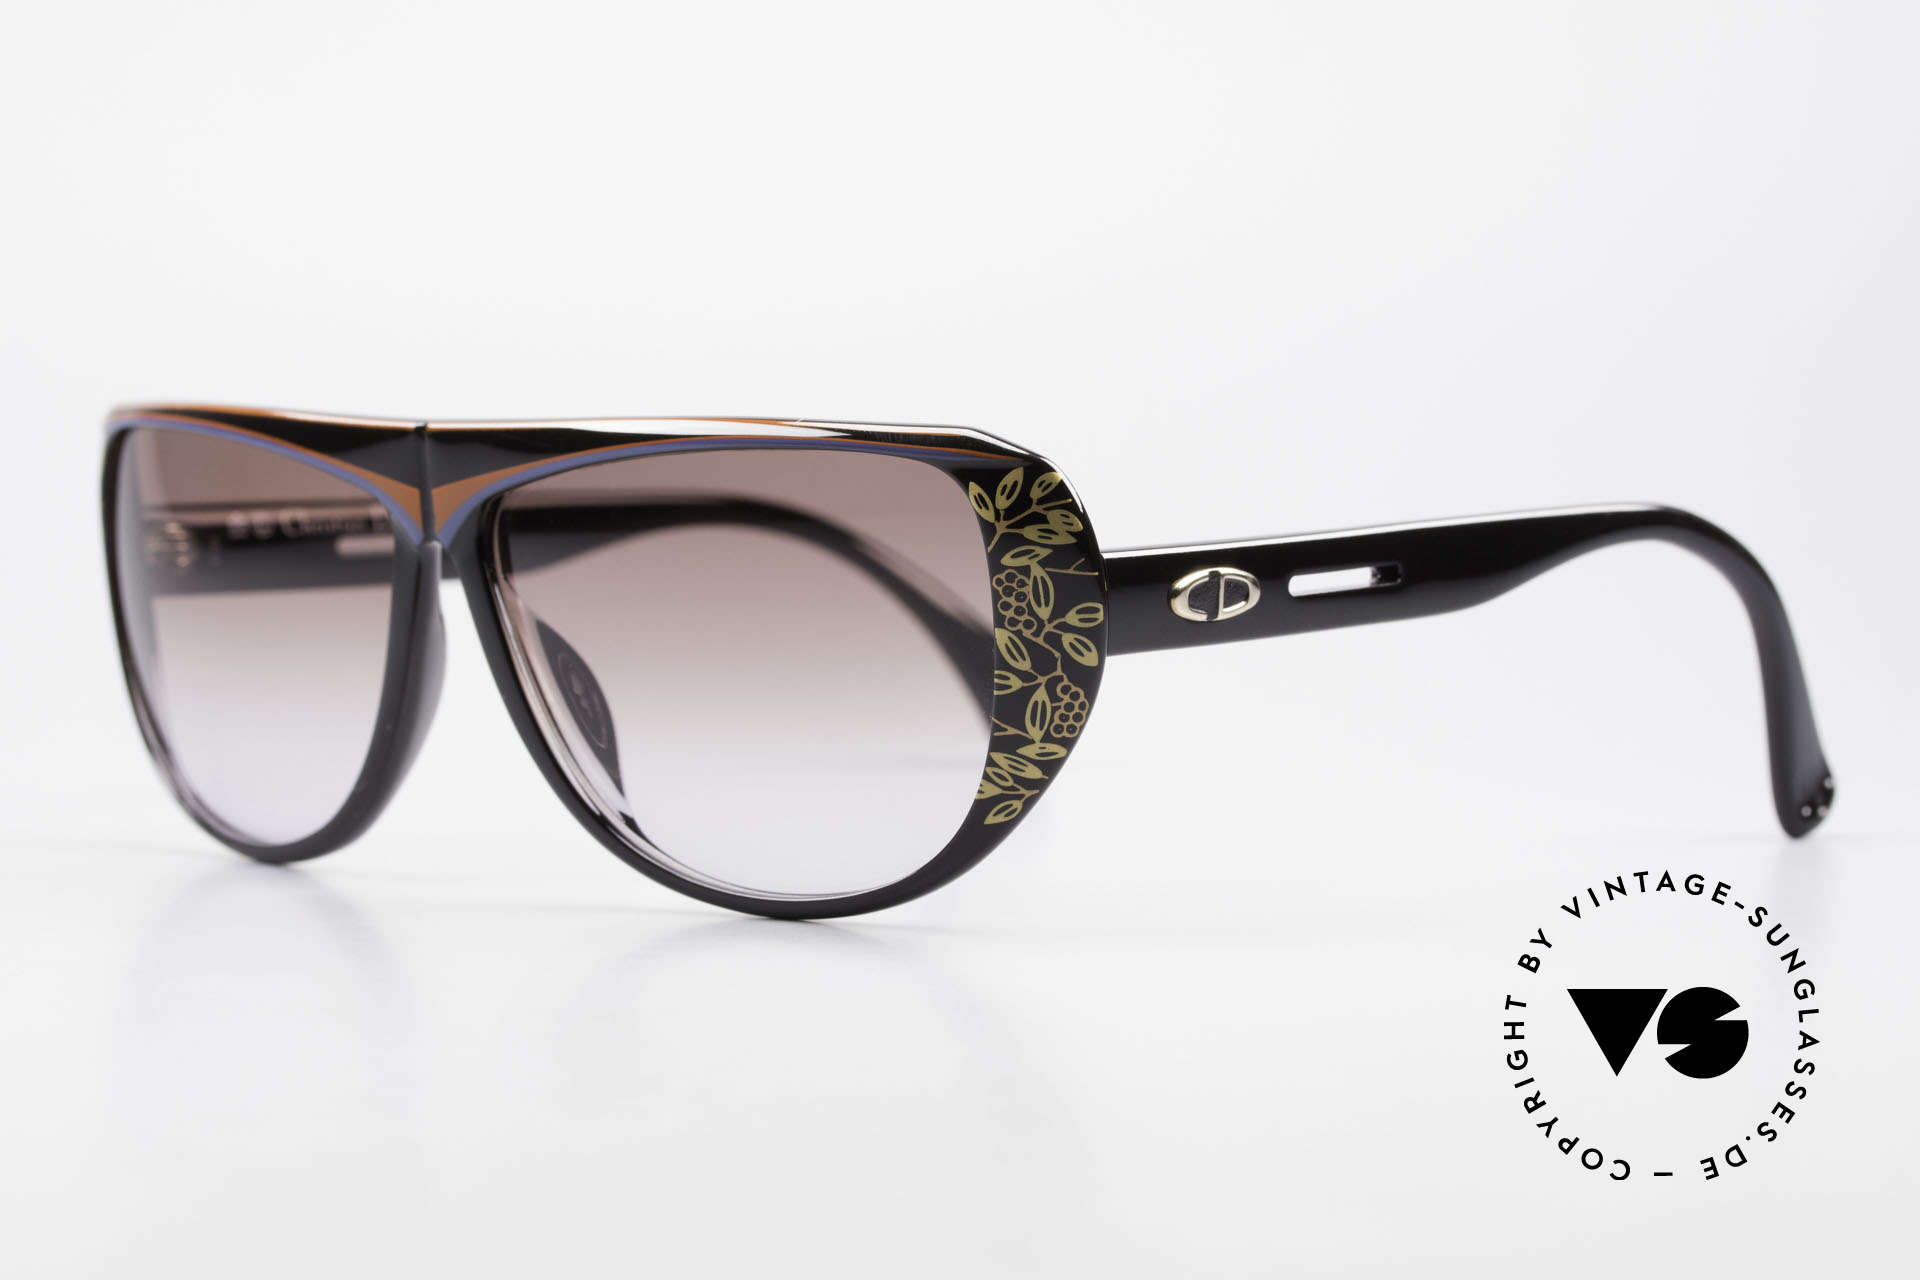 Christian Dior 2421 Ladies Sunglasses 80's Optyl, the incredible OPTYL material does not seem to age, Made for Women